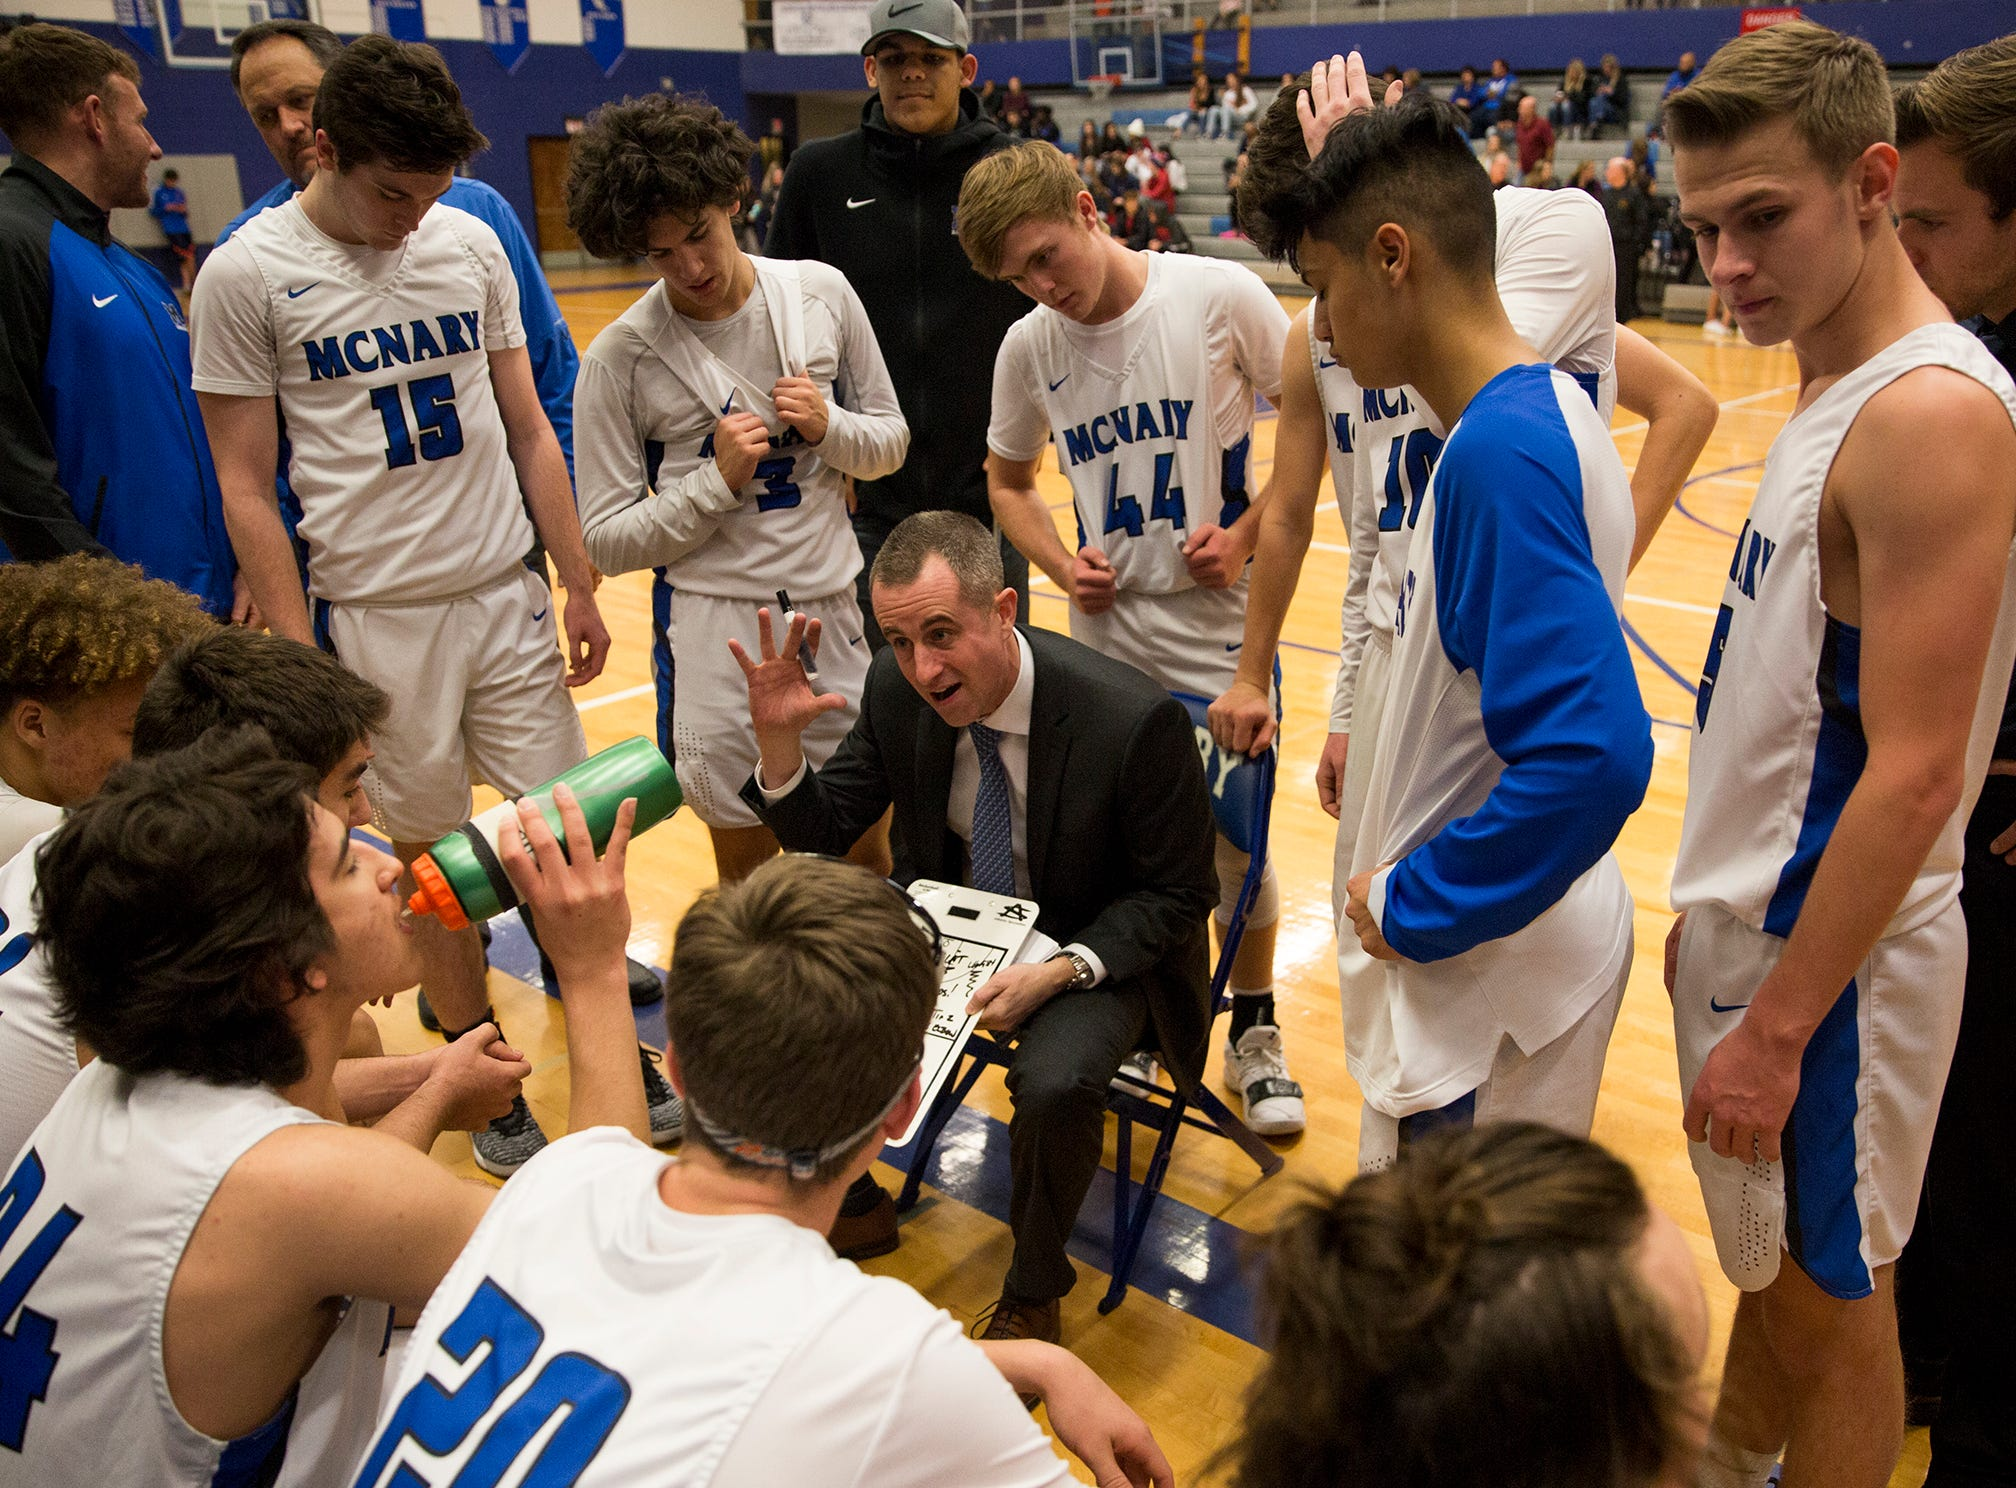 McNary's head coach Ryan Kirch talks to his team during the McNary boys basketball vs. West Salem game at McNary High School in Keizer on Wednesday, Feb. 6, 2019.